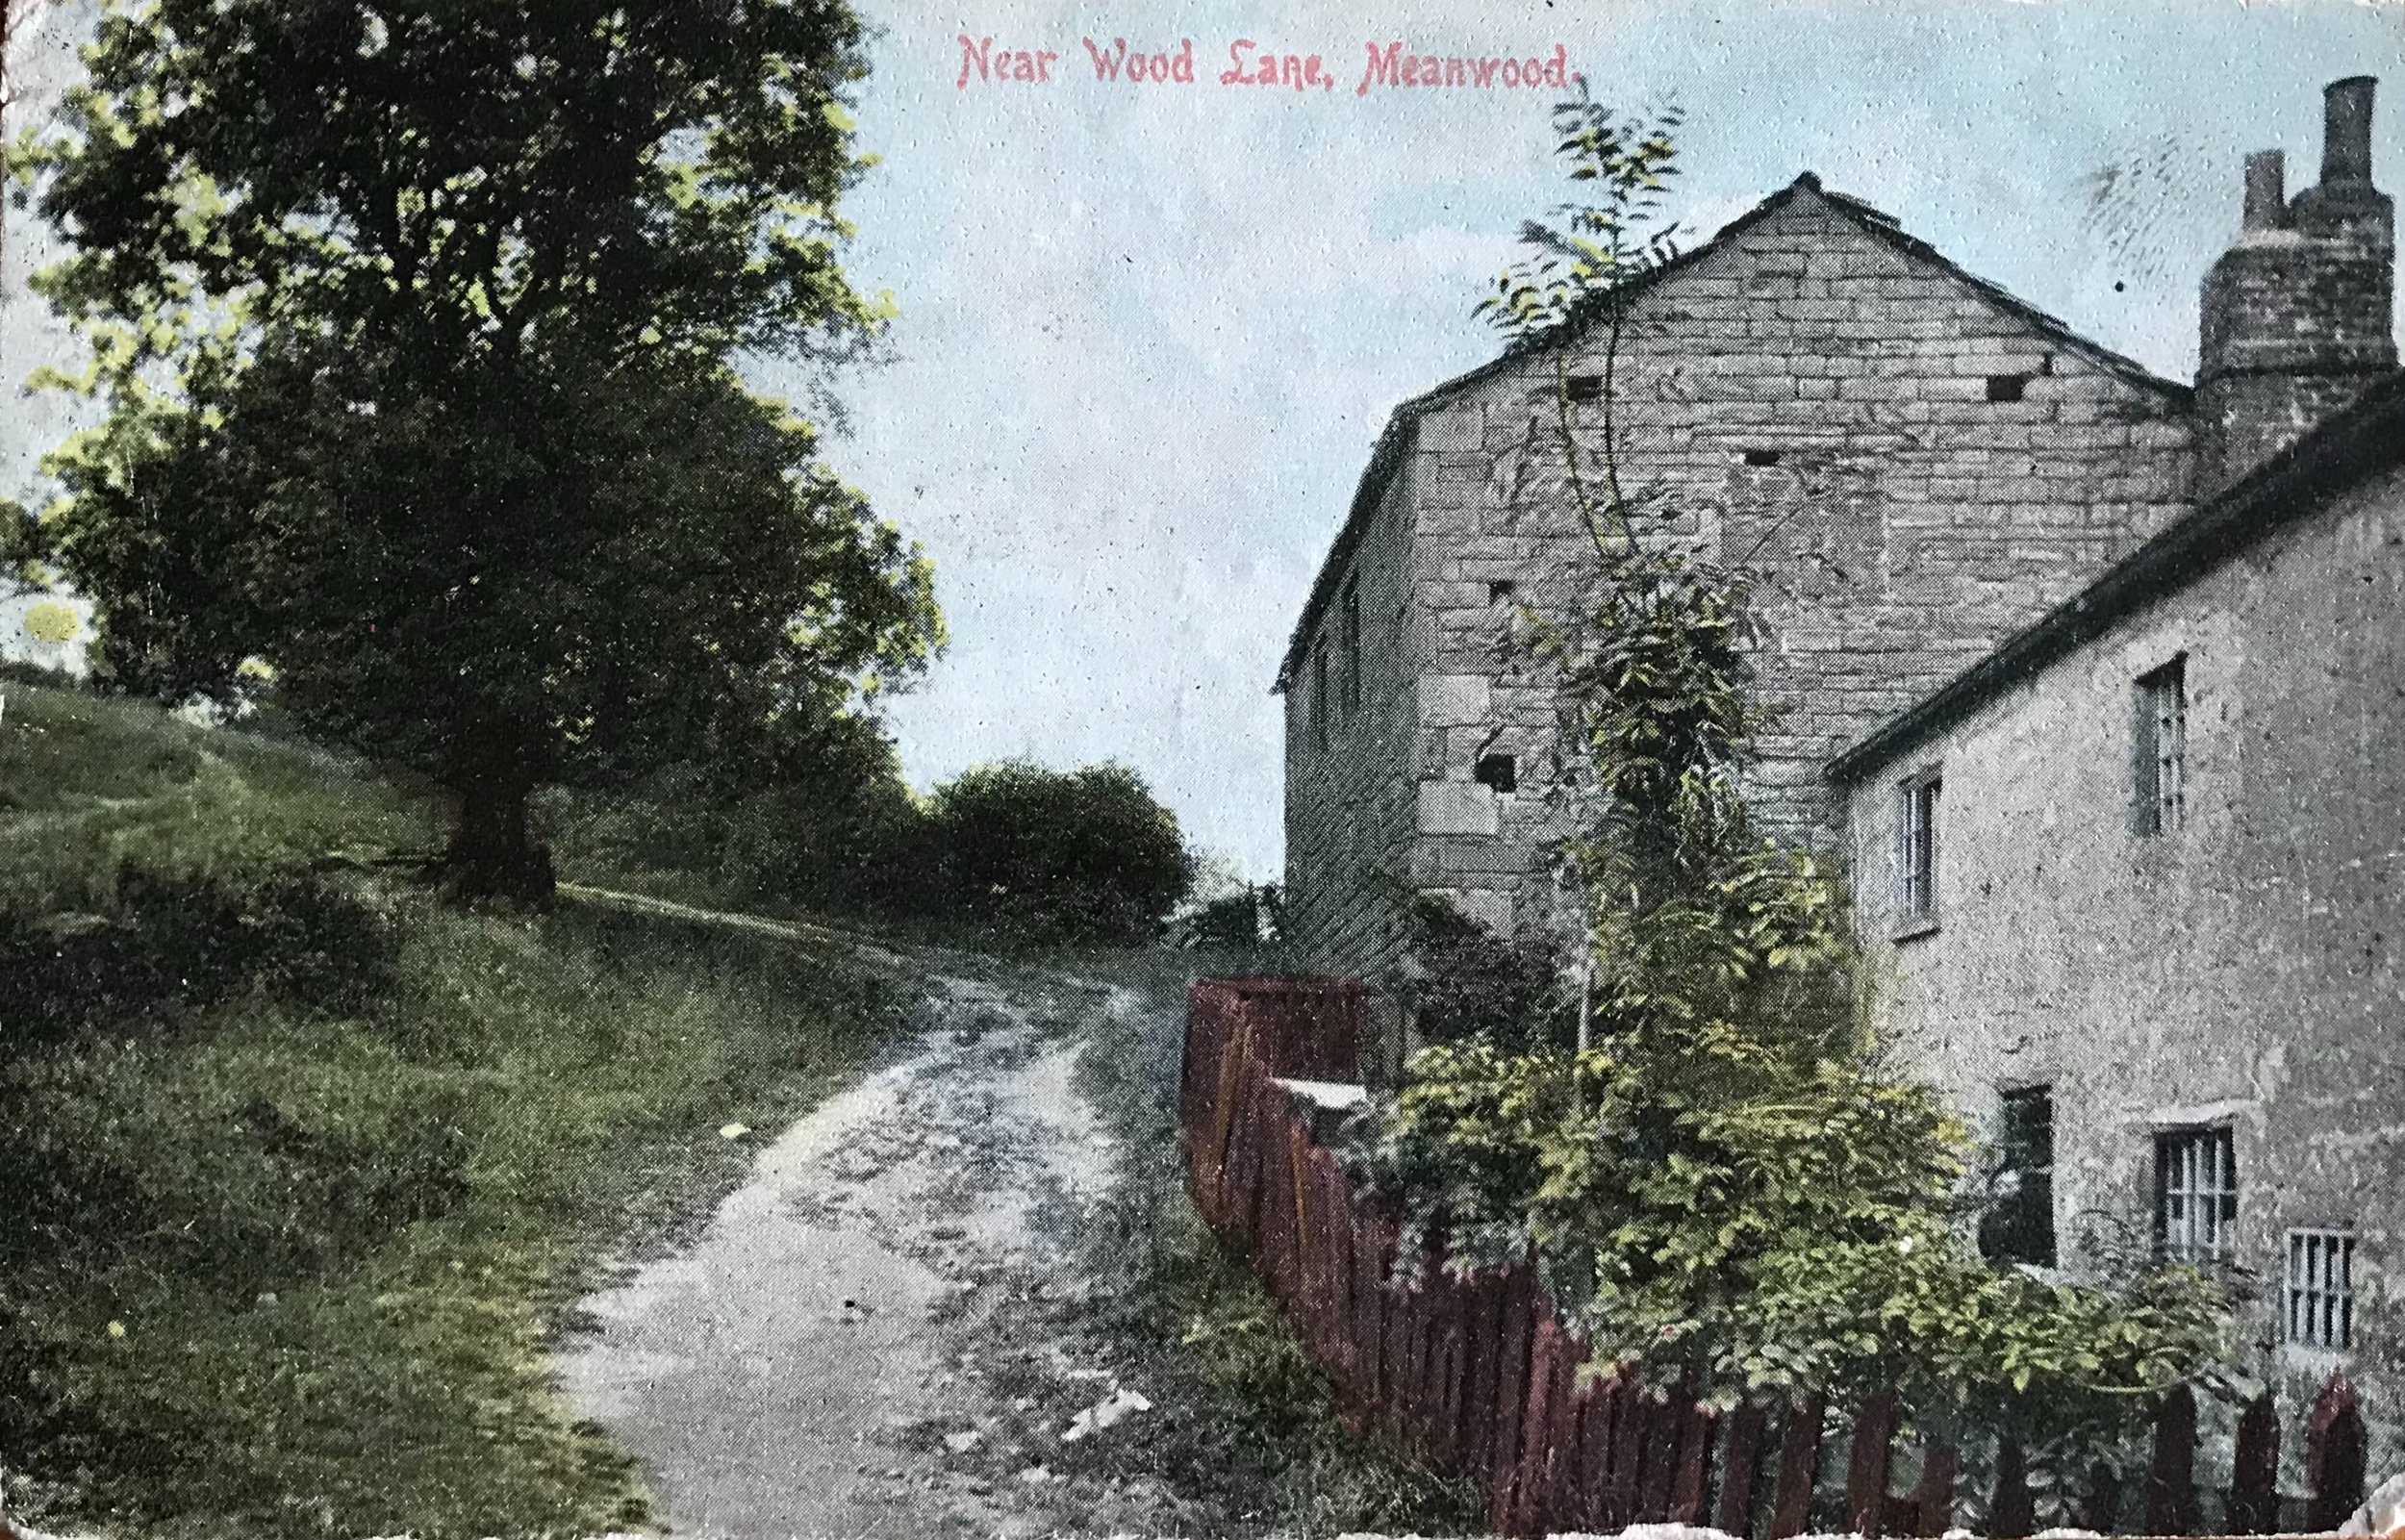 End of Wood Lane, Meanwood, undated